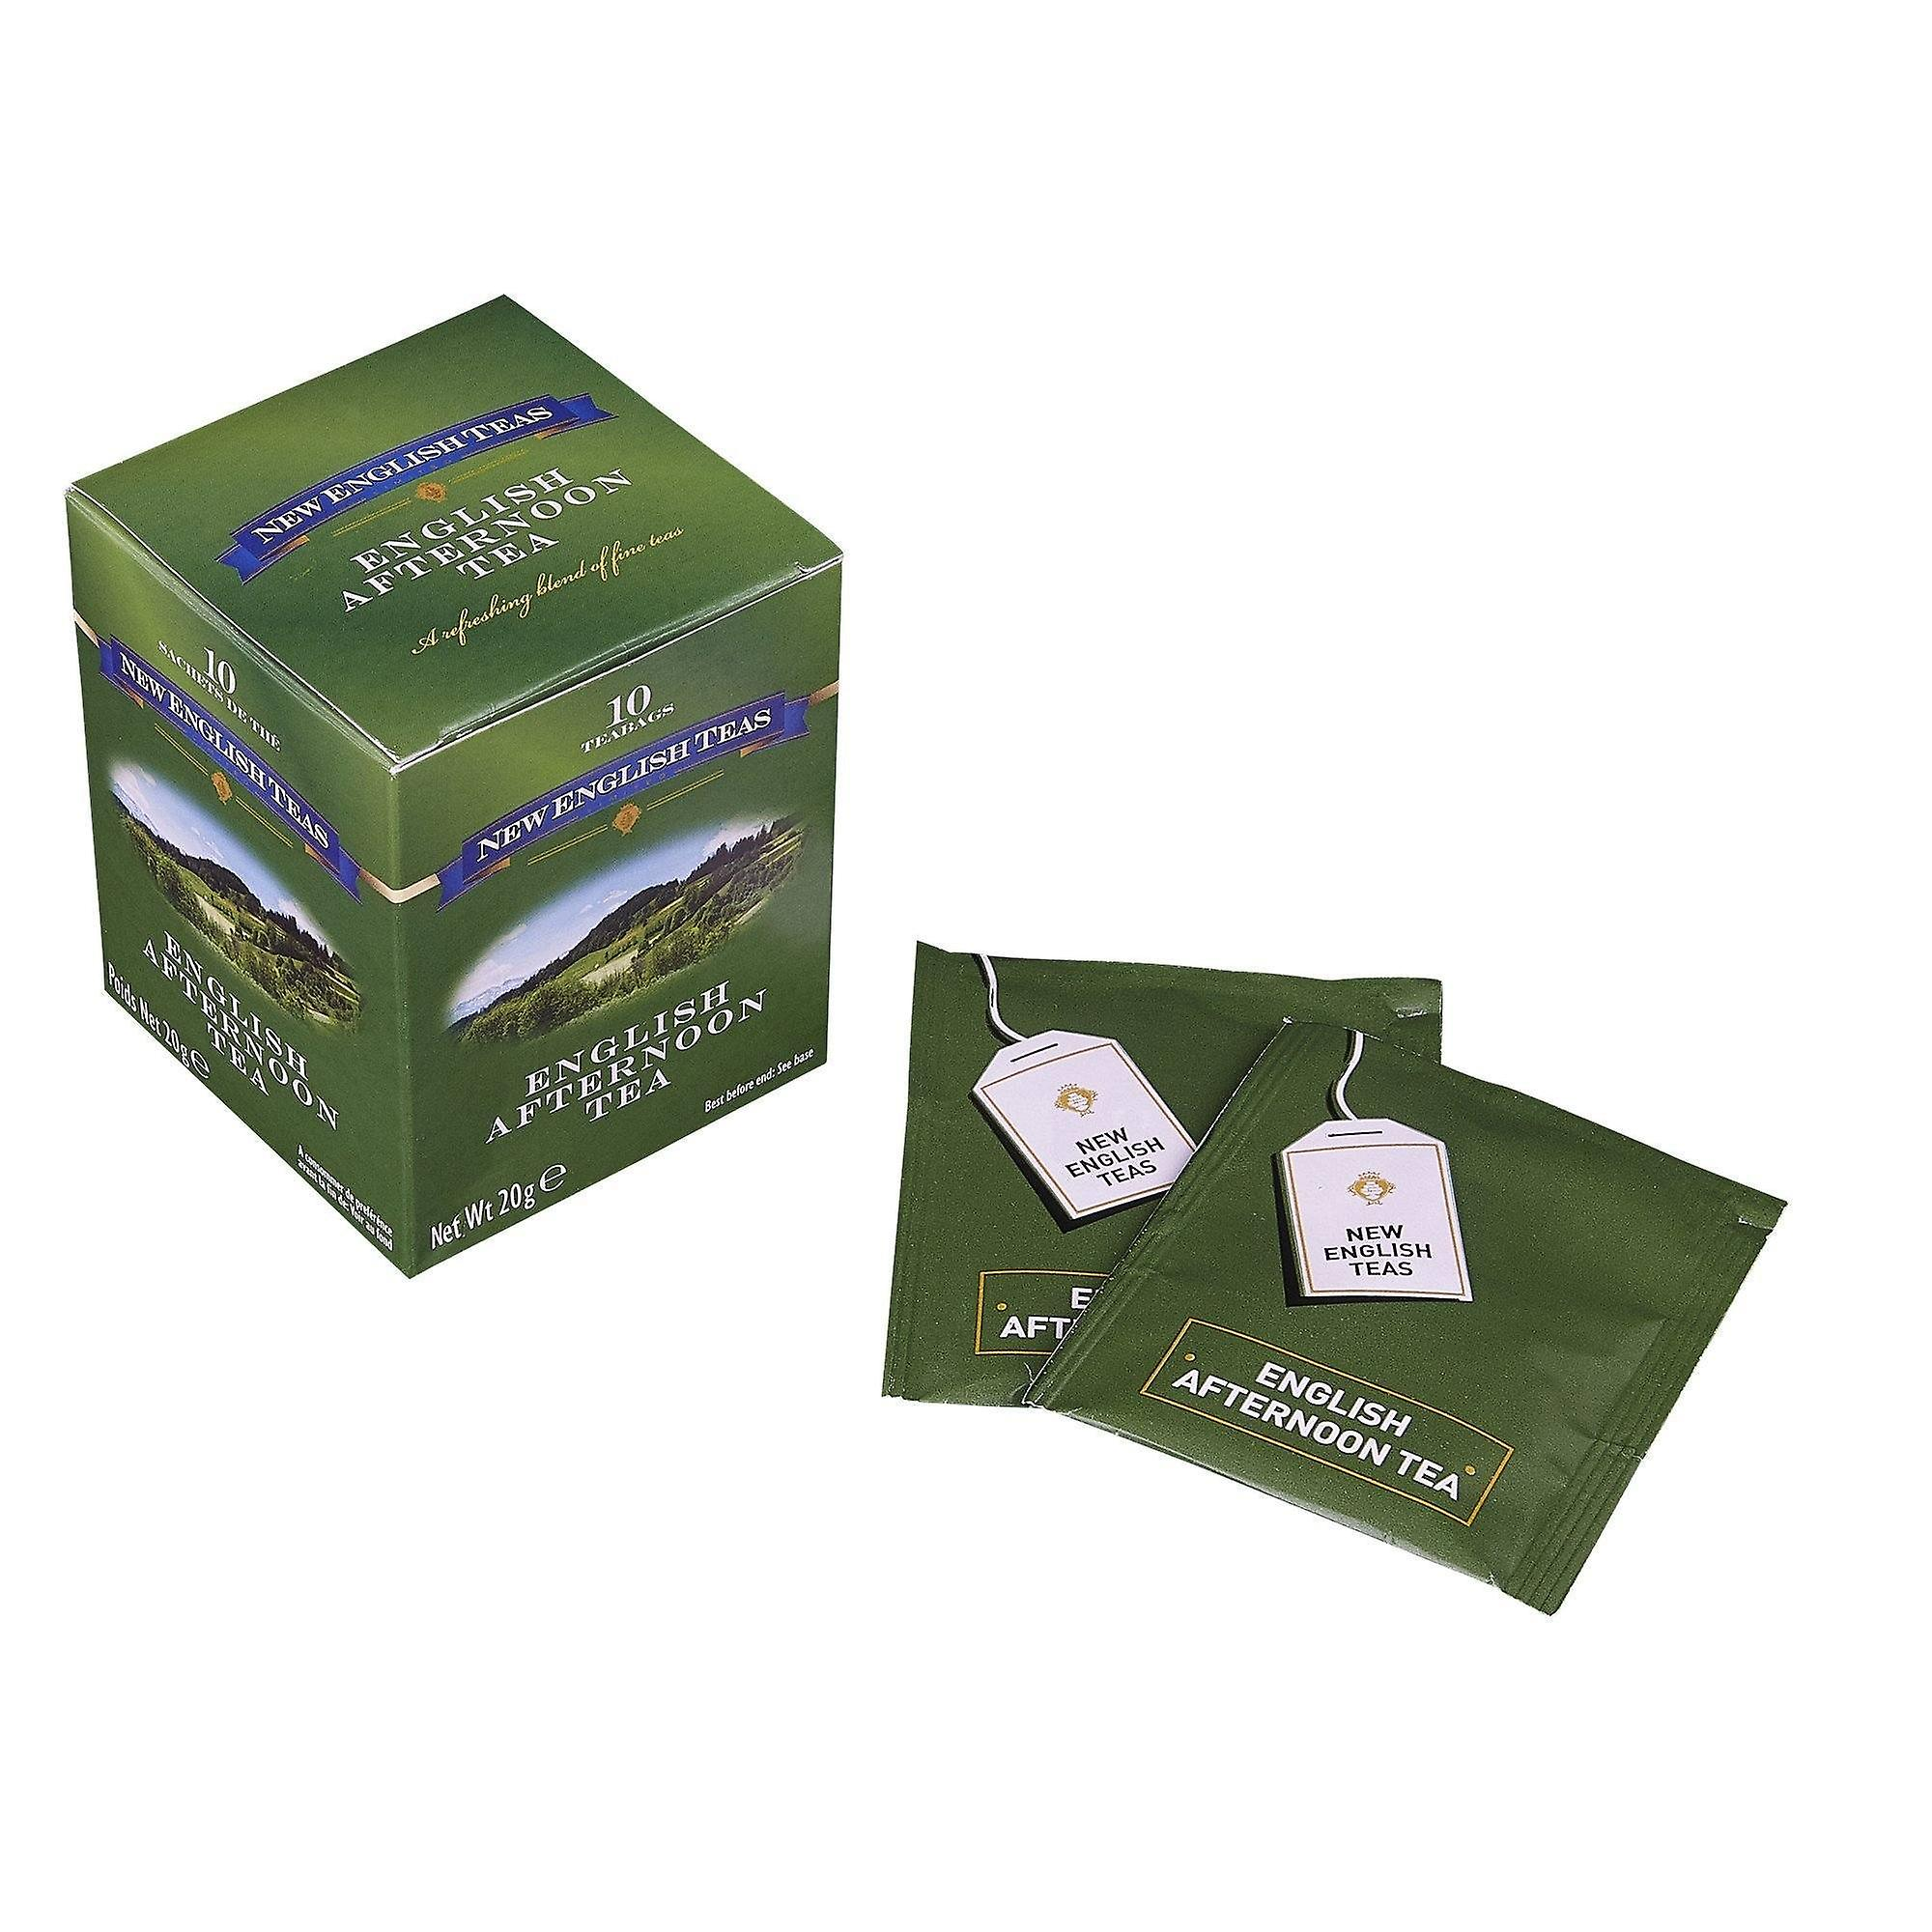 Classic english afternoon tea 10 individually wrapped teabags